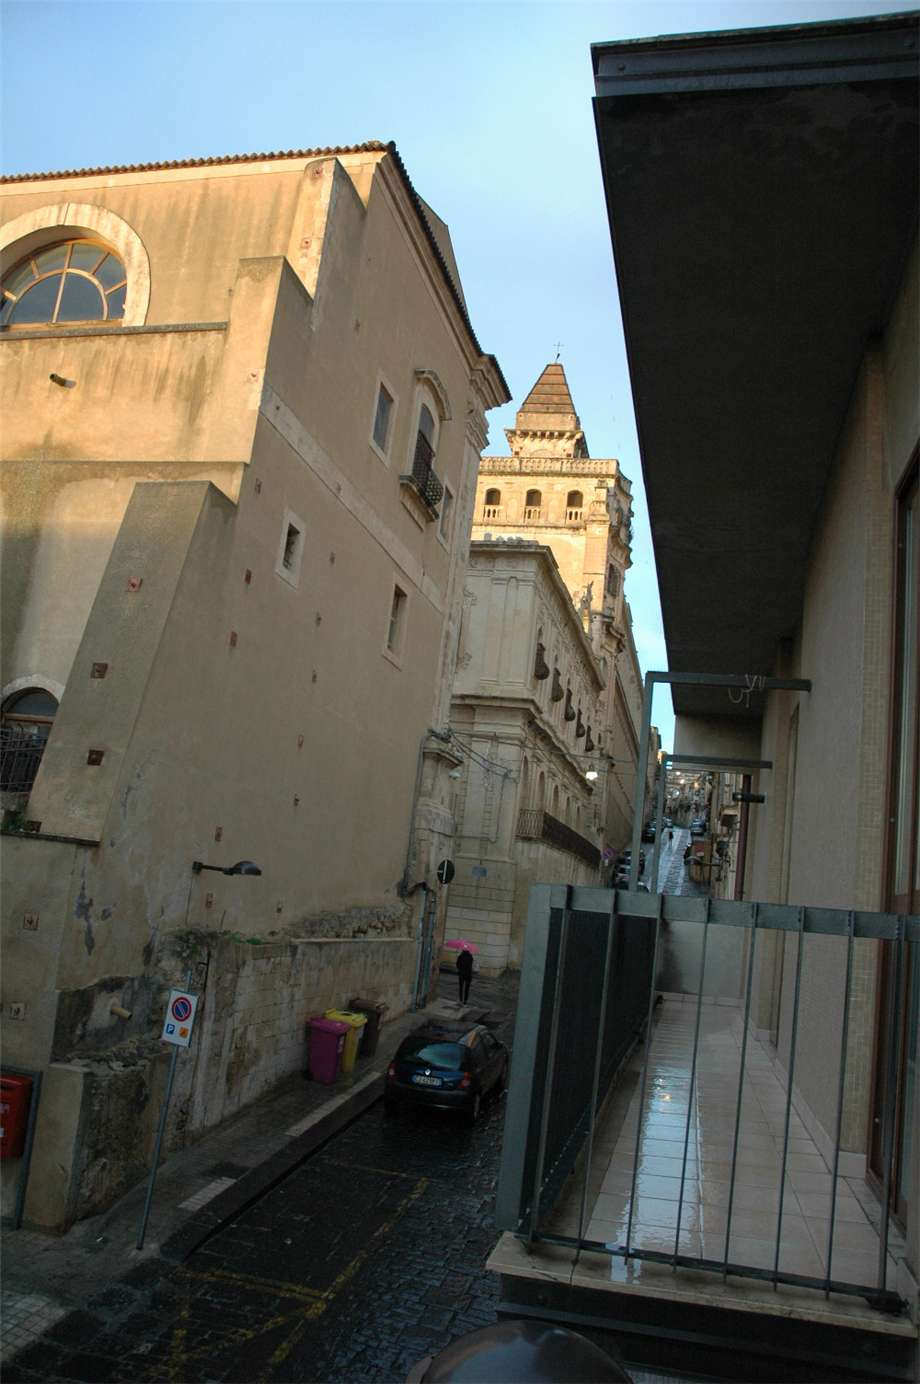 For sale Detached house Noto  #260C n.12